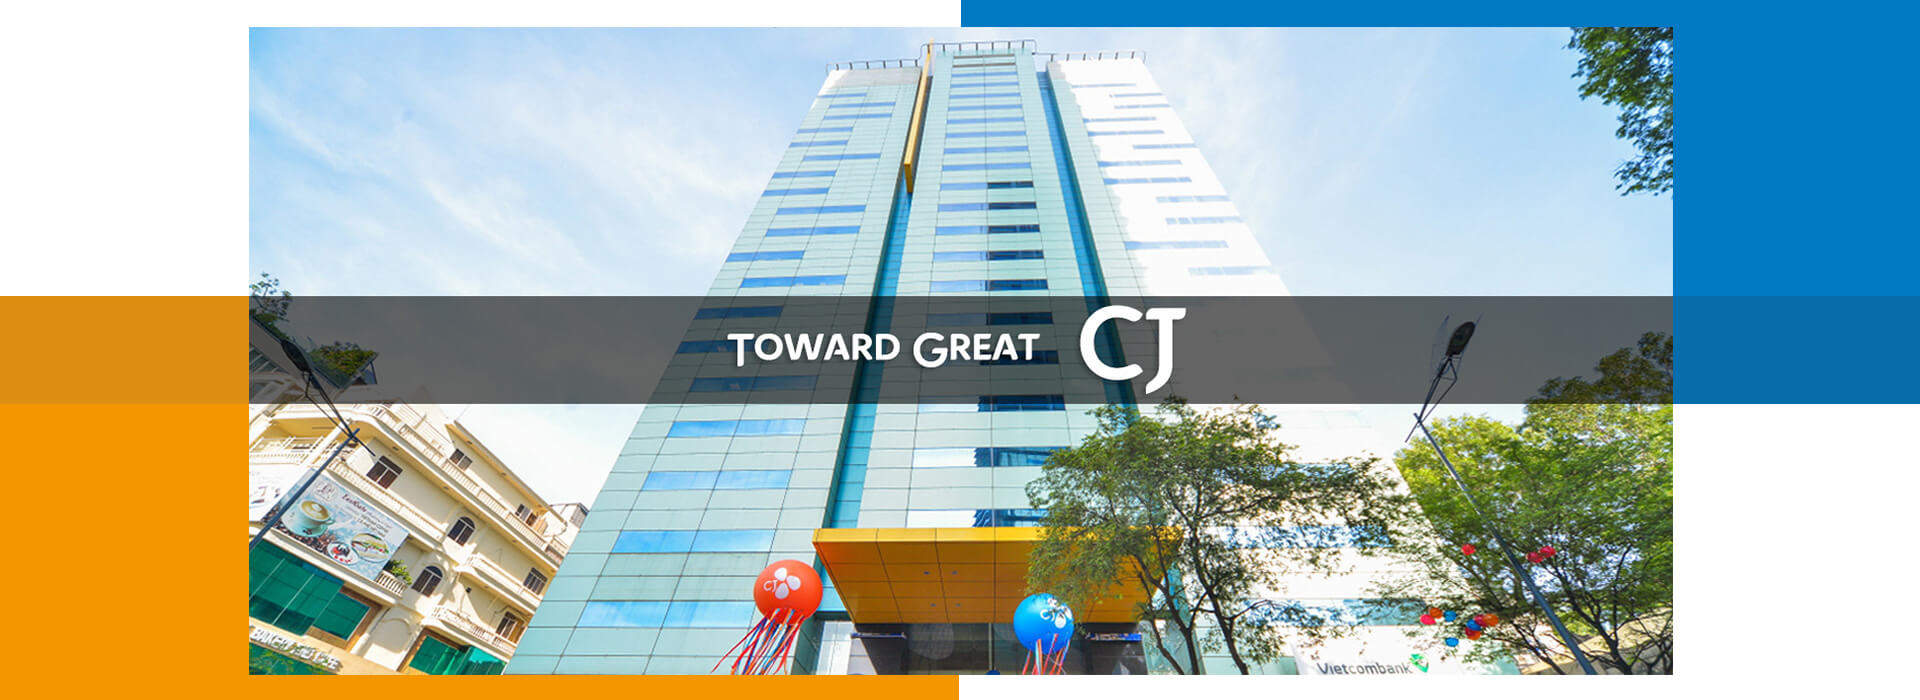 CJ Tower Building